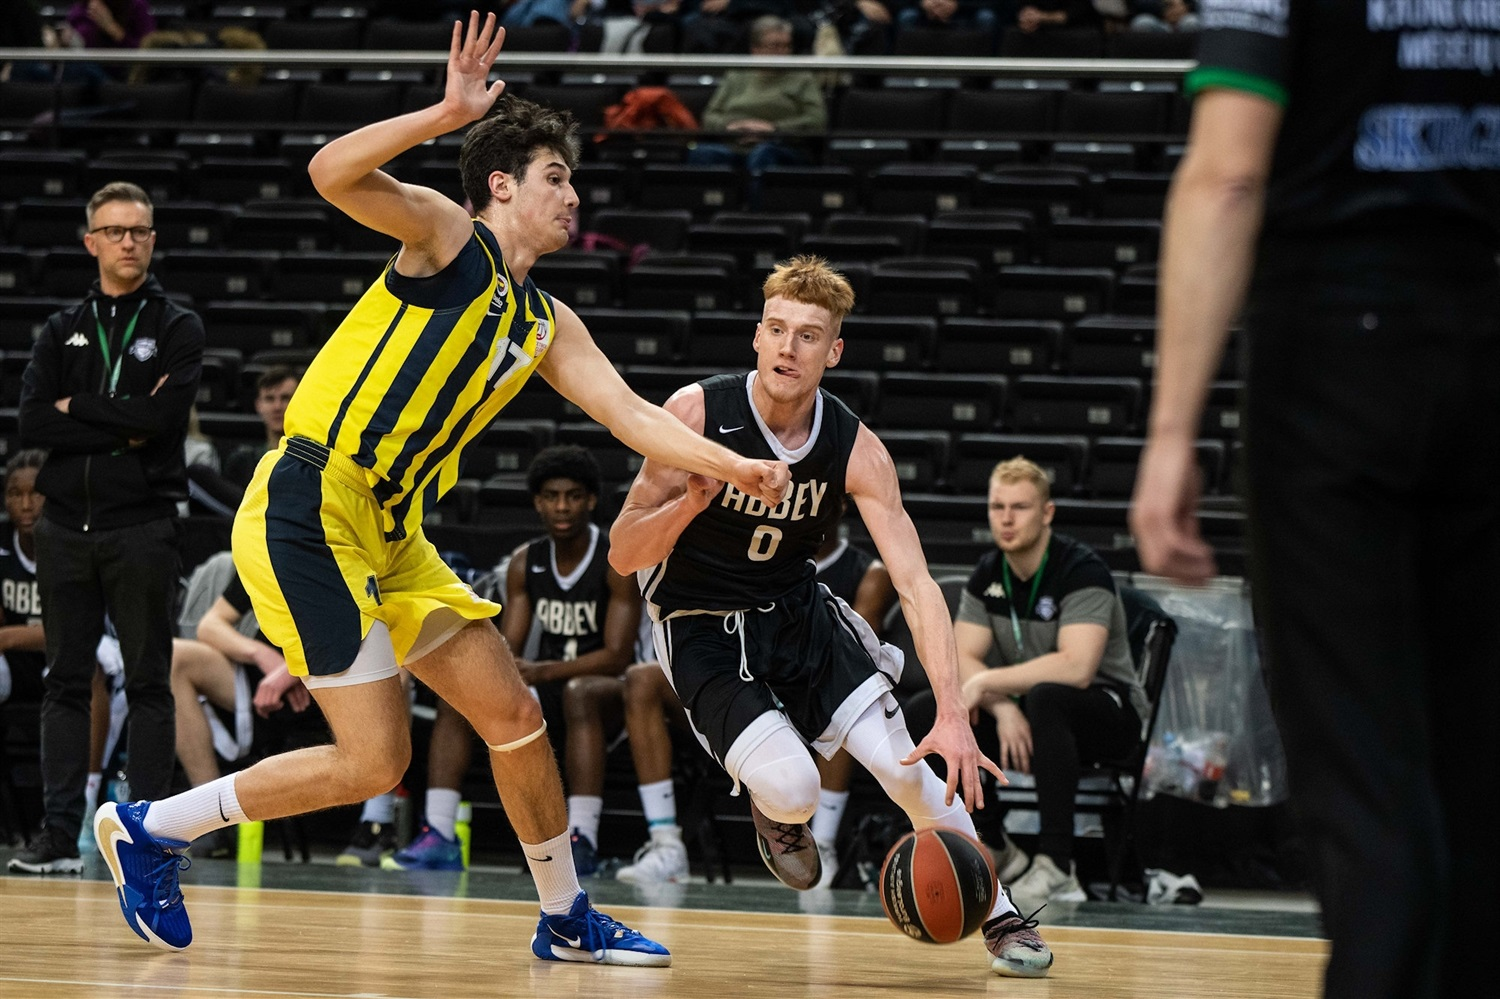 Cameron Hildreth - U18 Barking Abbey London (photo  Justinas Gedvilas -  Zalgiris) - ANGT Kaunas 2020 - JT19